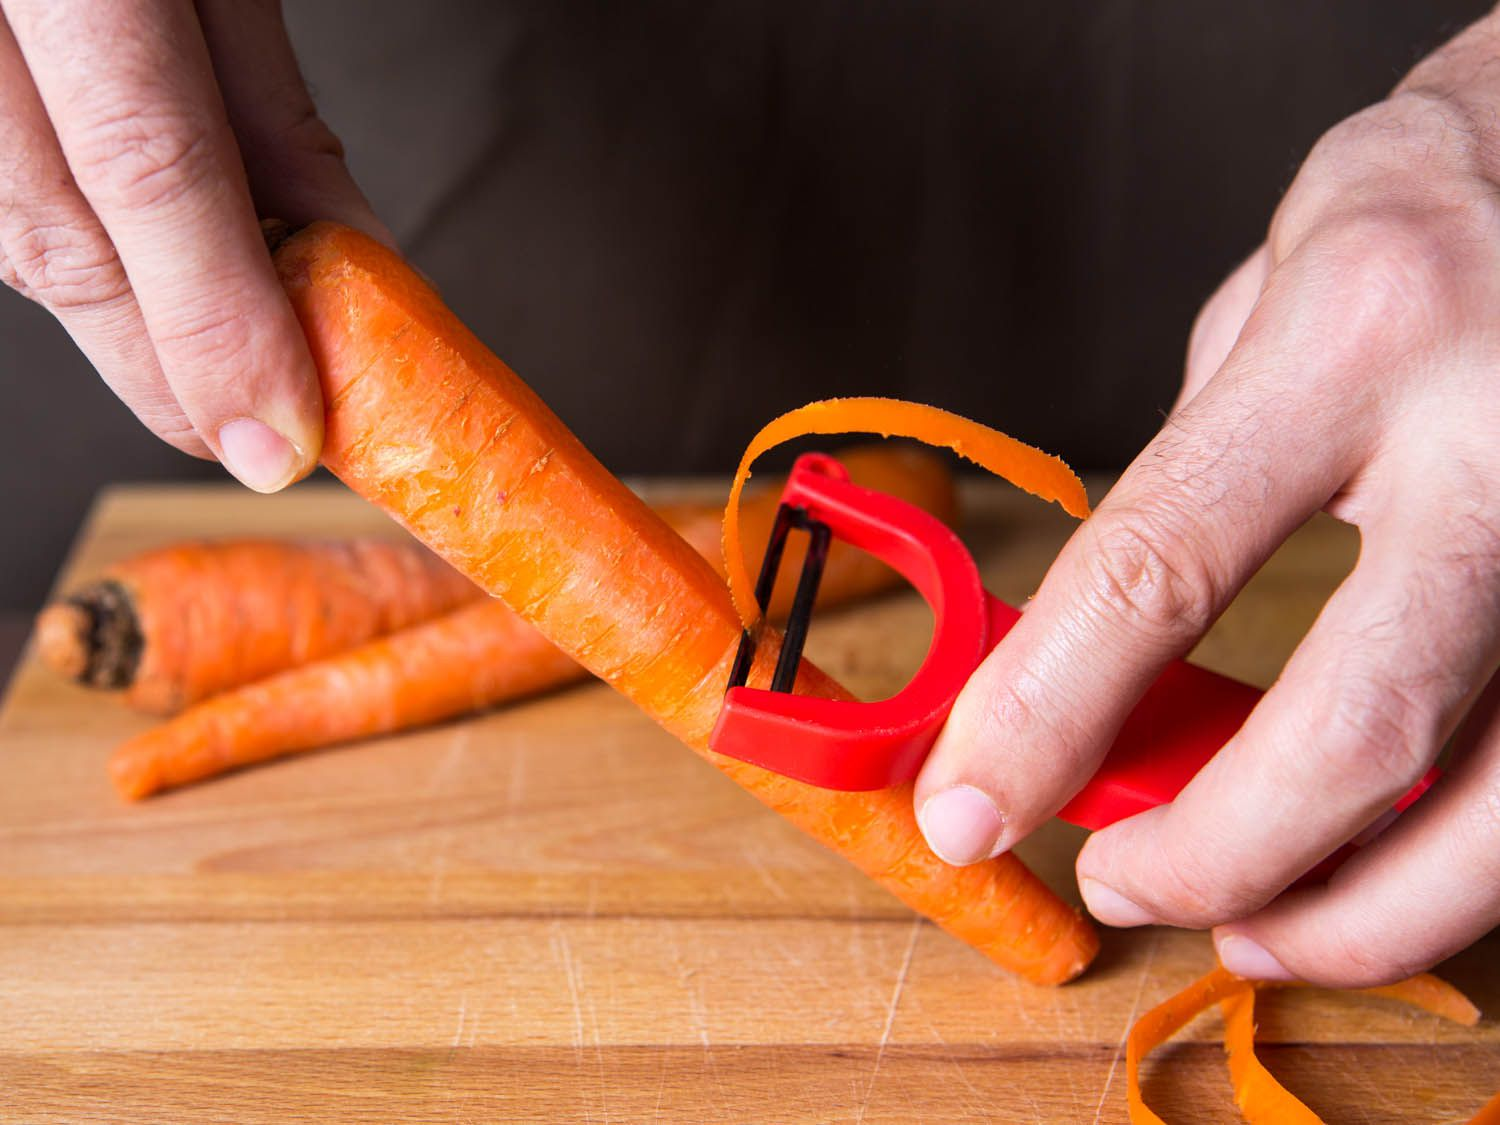 Using a y-peeler to peel a carrot